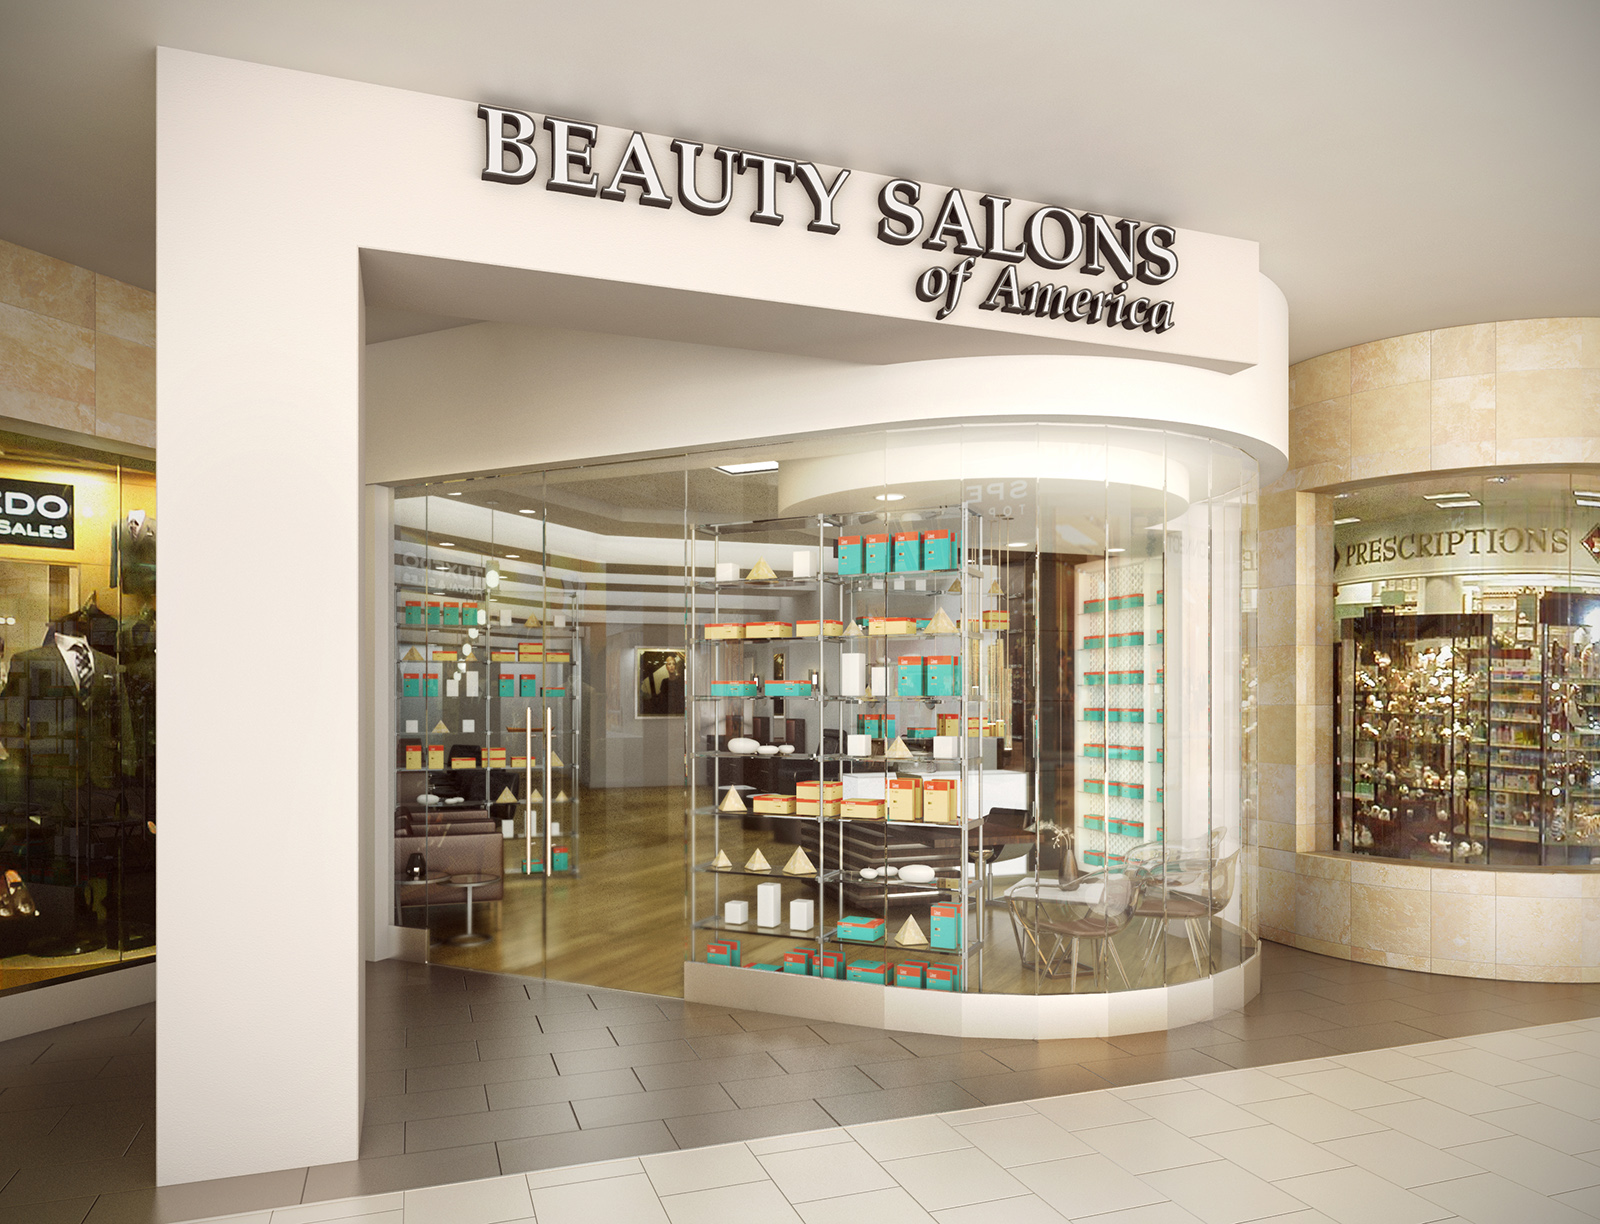 Beauty Salons of America